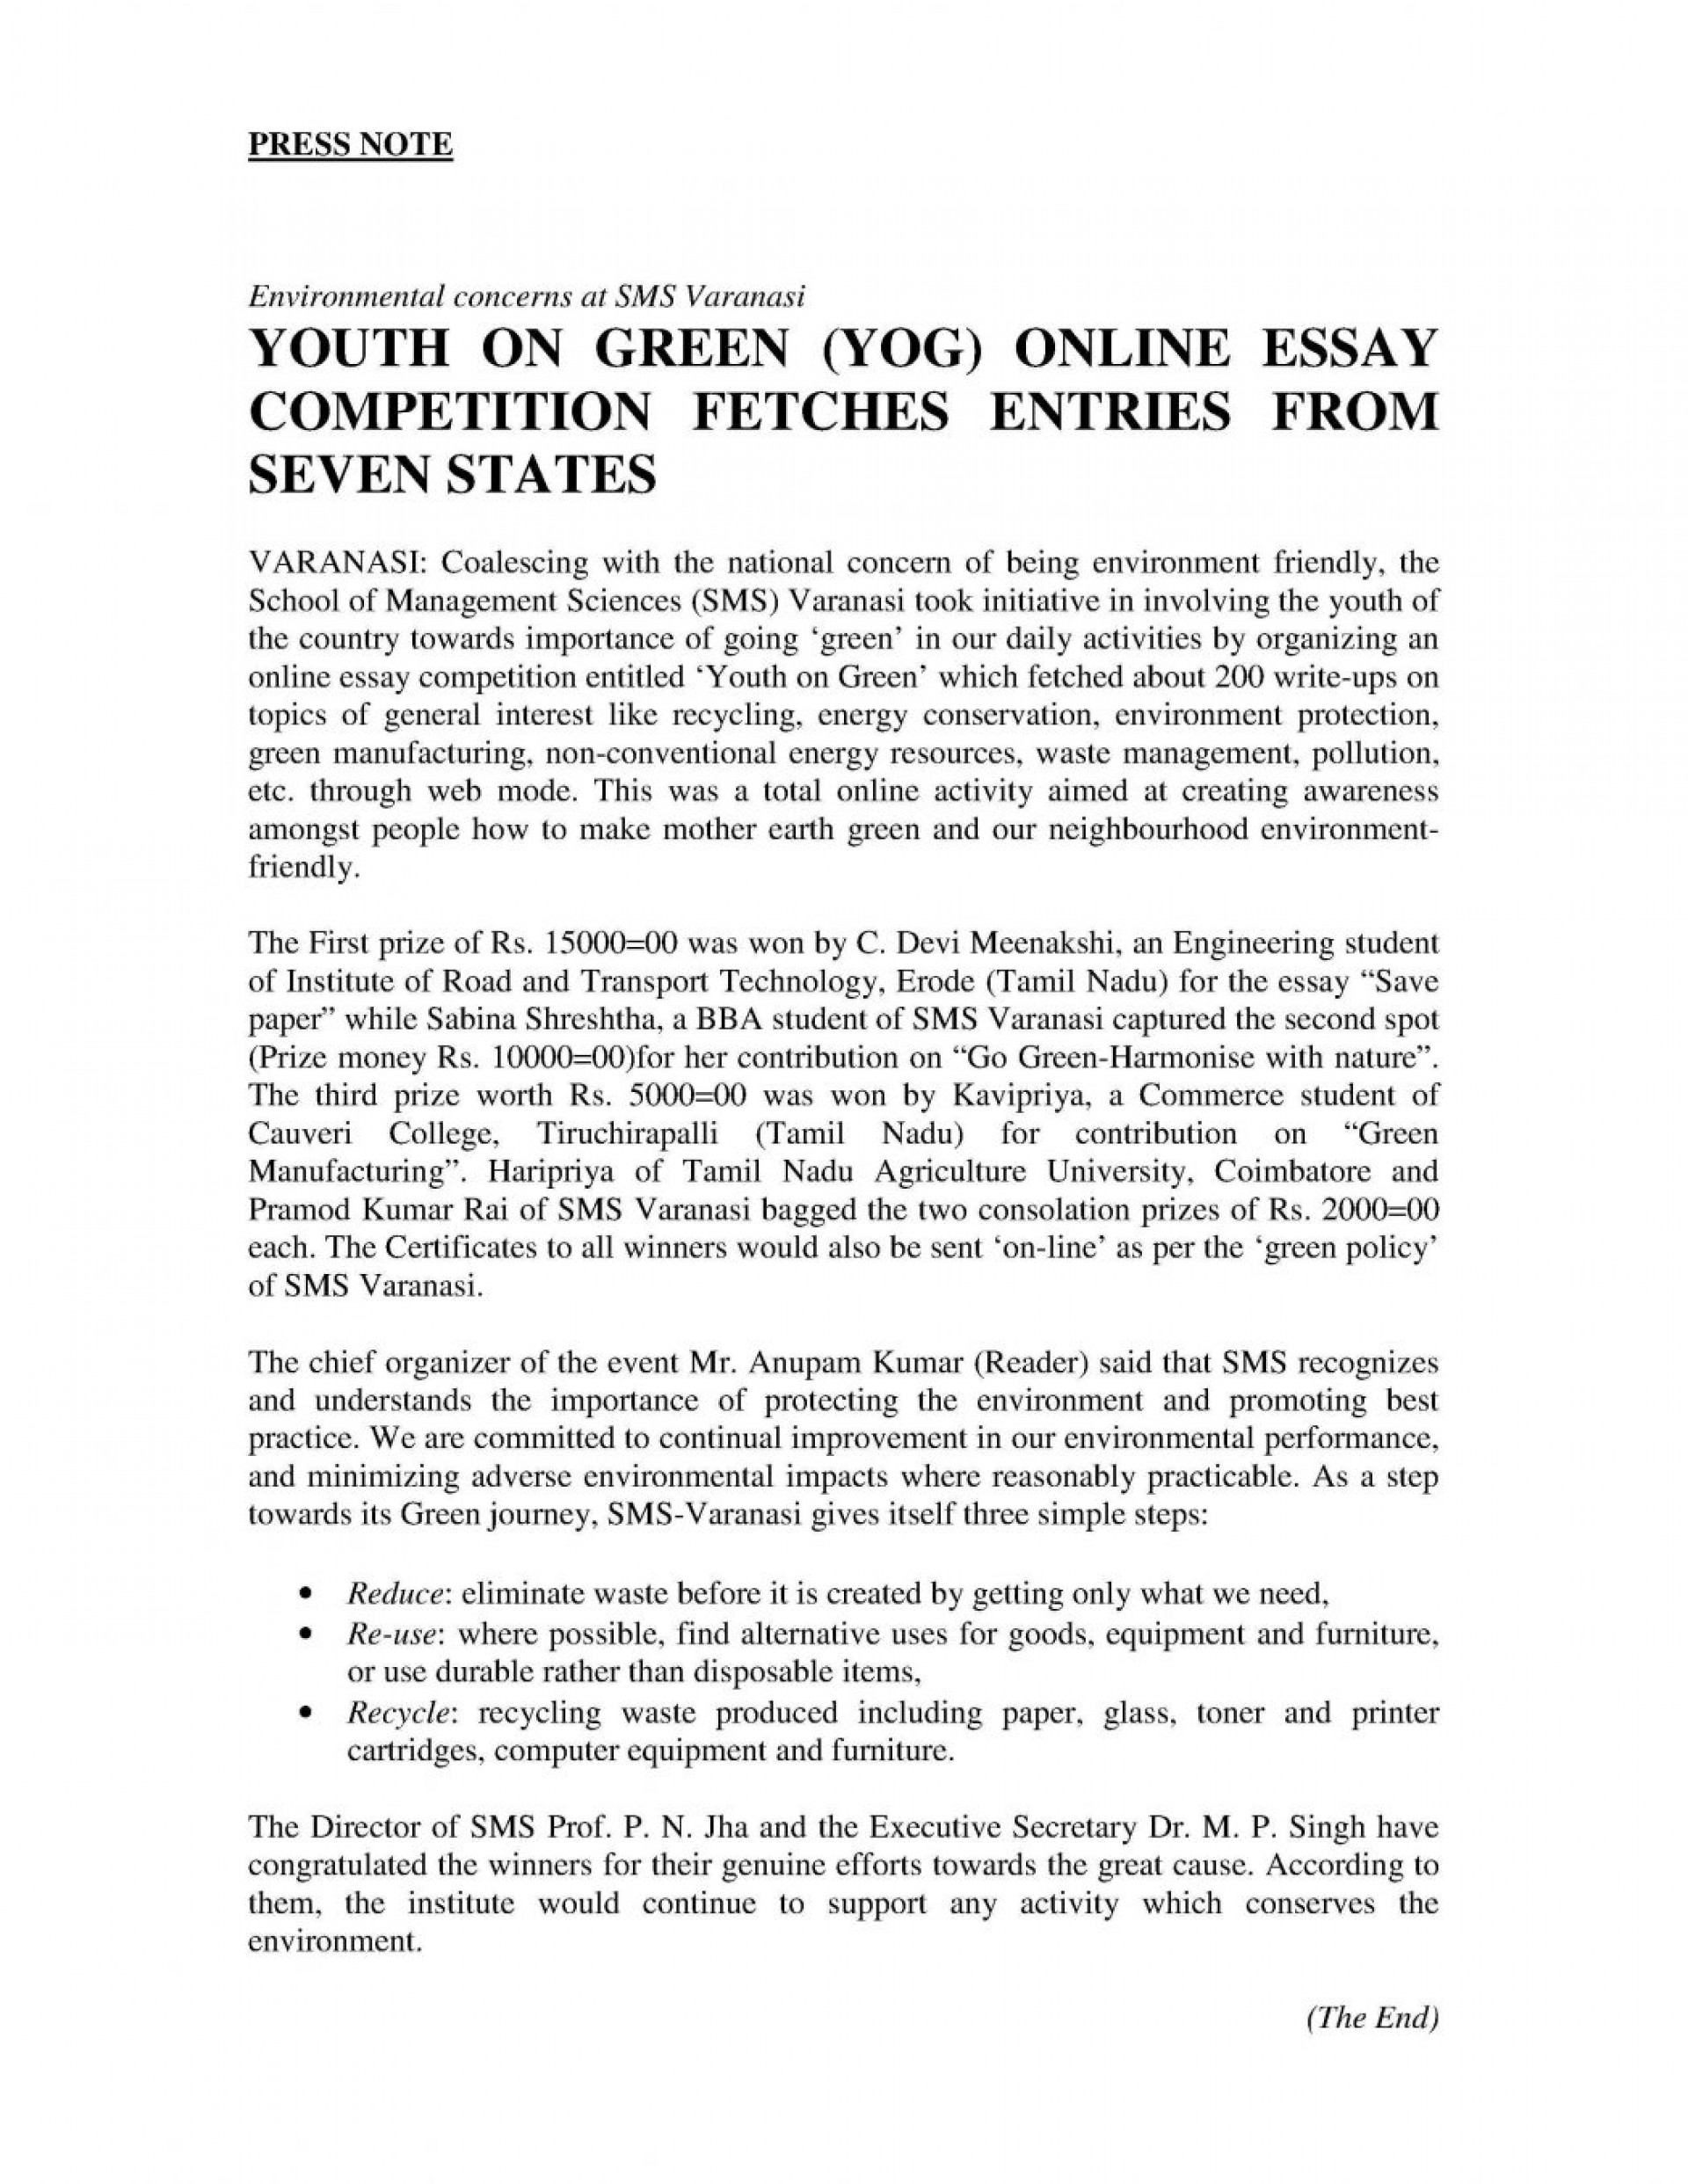 008 Healthy Food Essay Essays Eating Organizations Online Yog Press Re Block 1048x1356 Best Habits In Hindi Health English And Unhealthy 1920